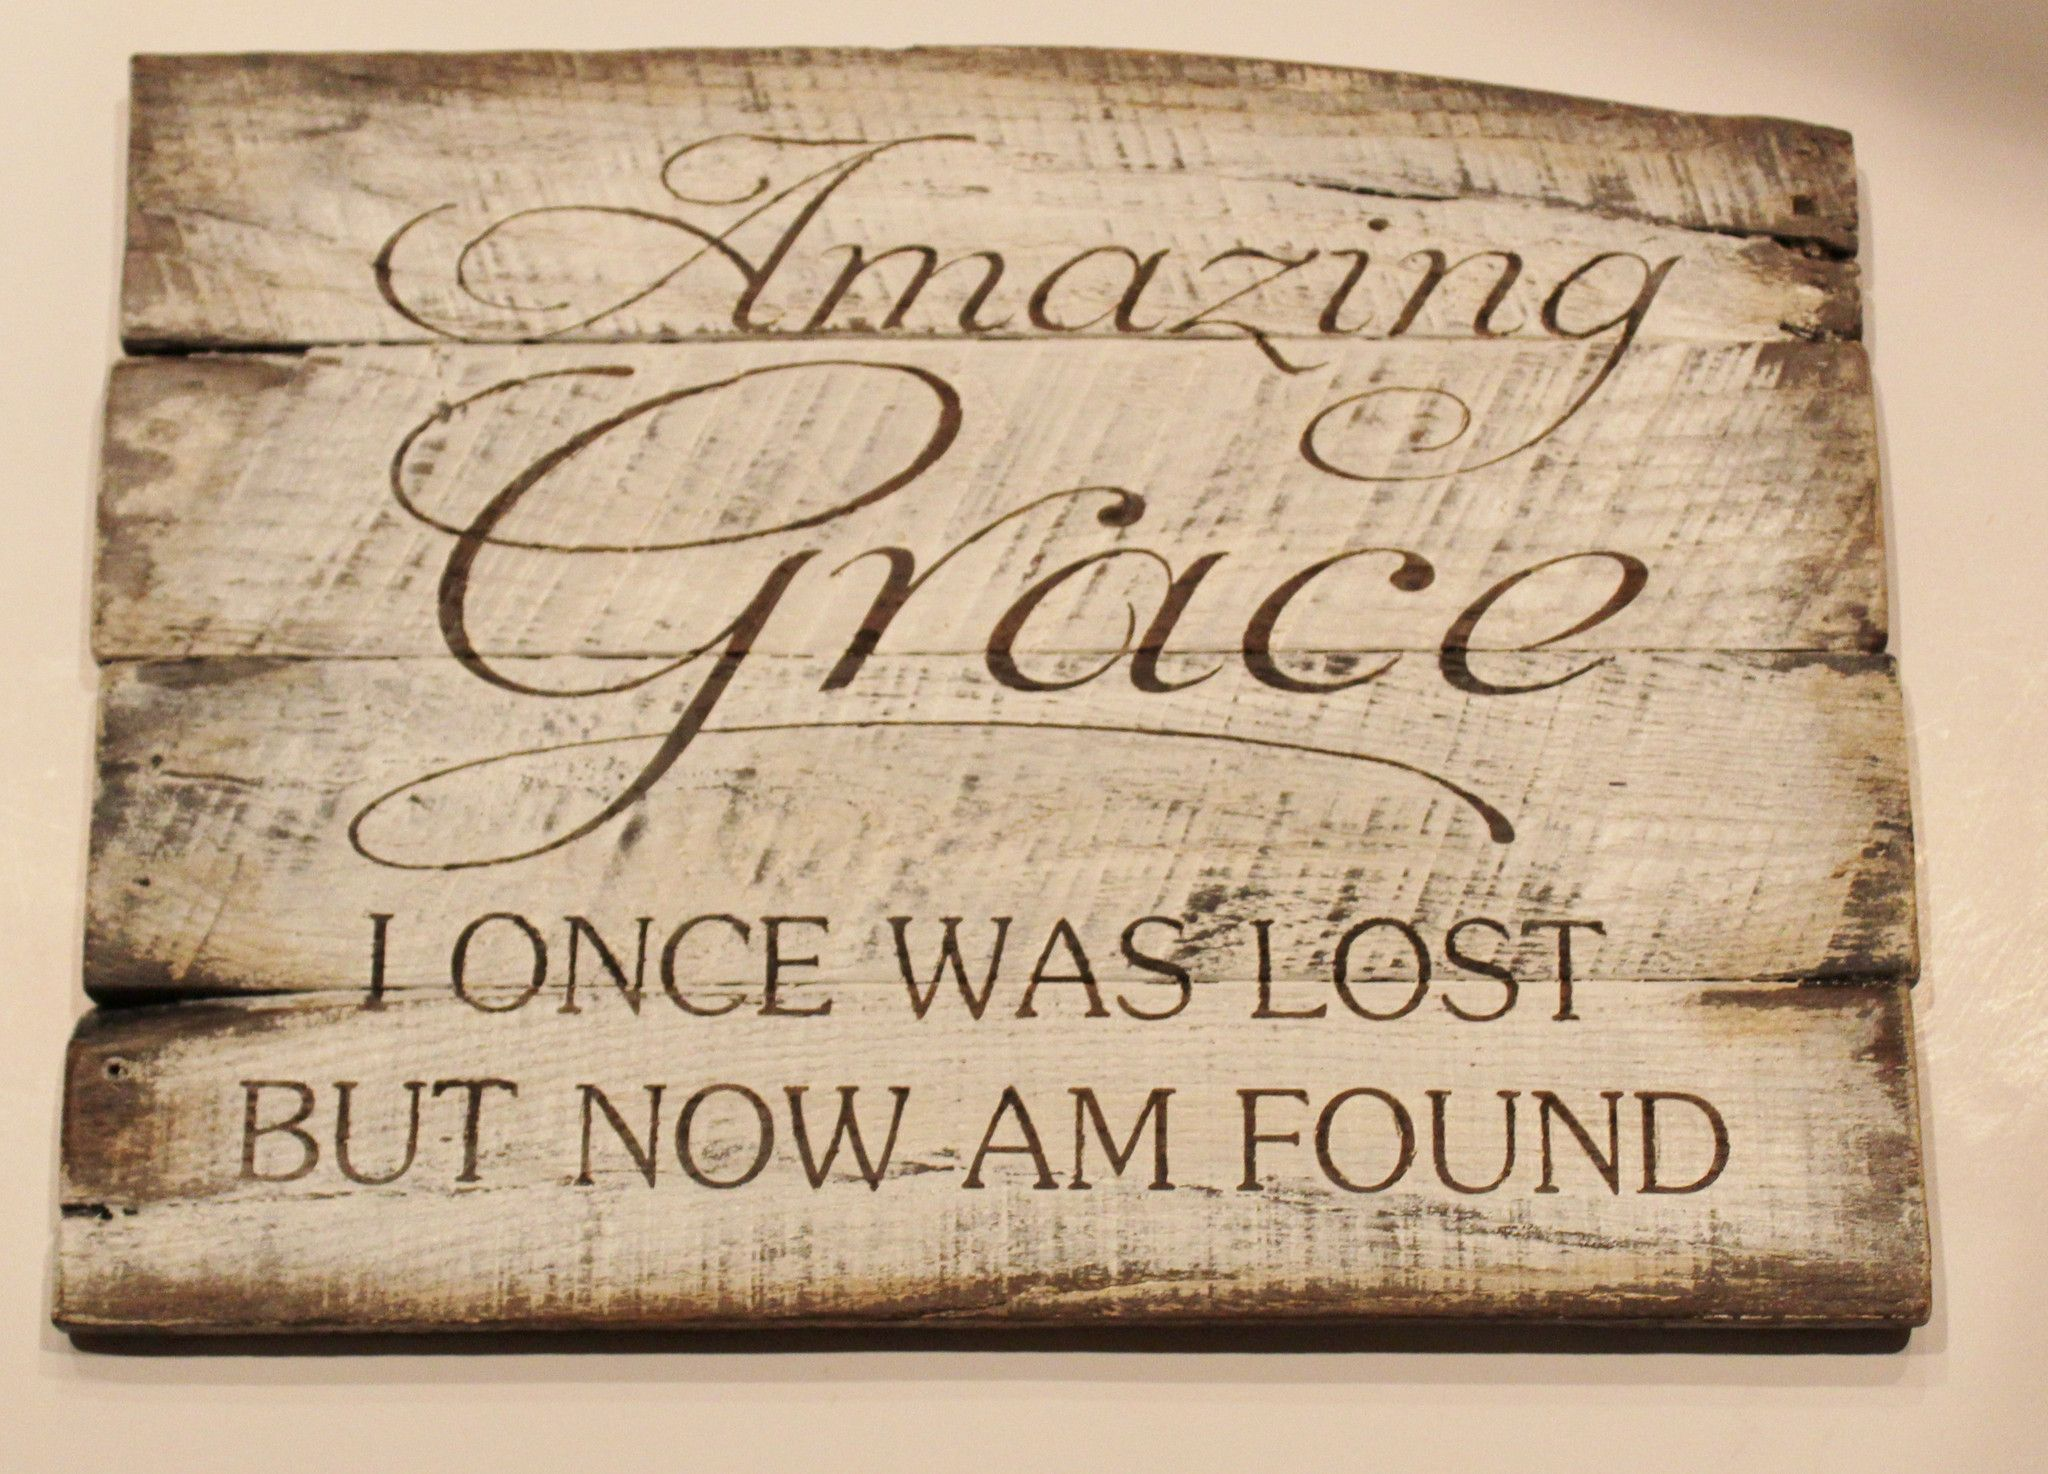 Amazing grace wall art hand painted wood sign gift for christian